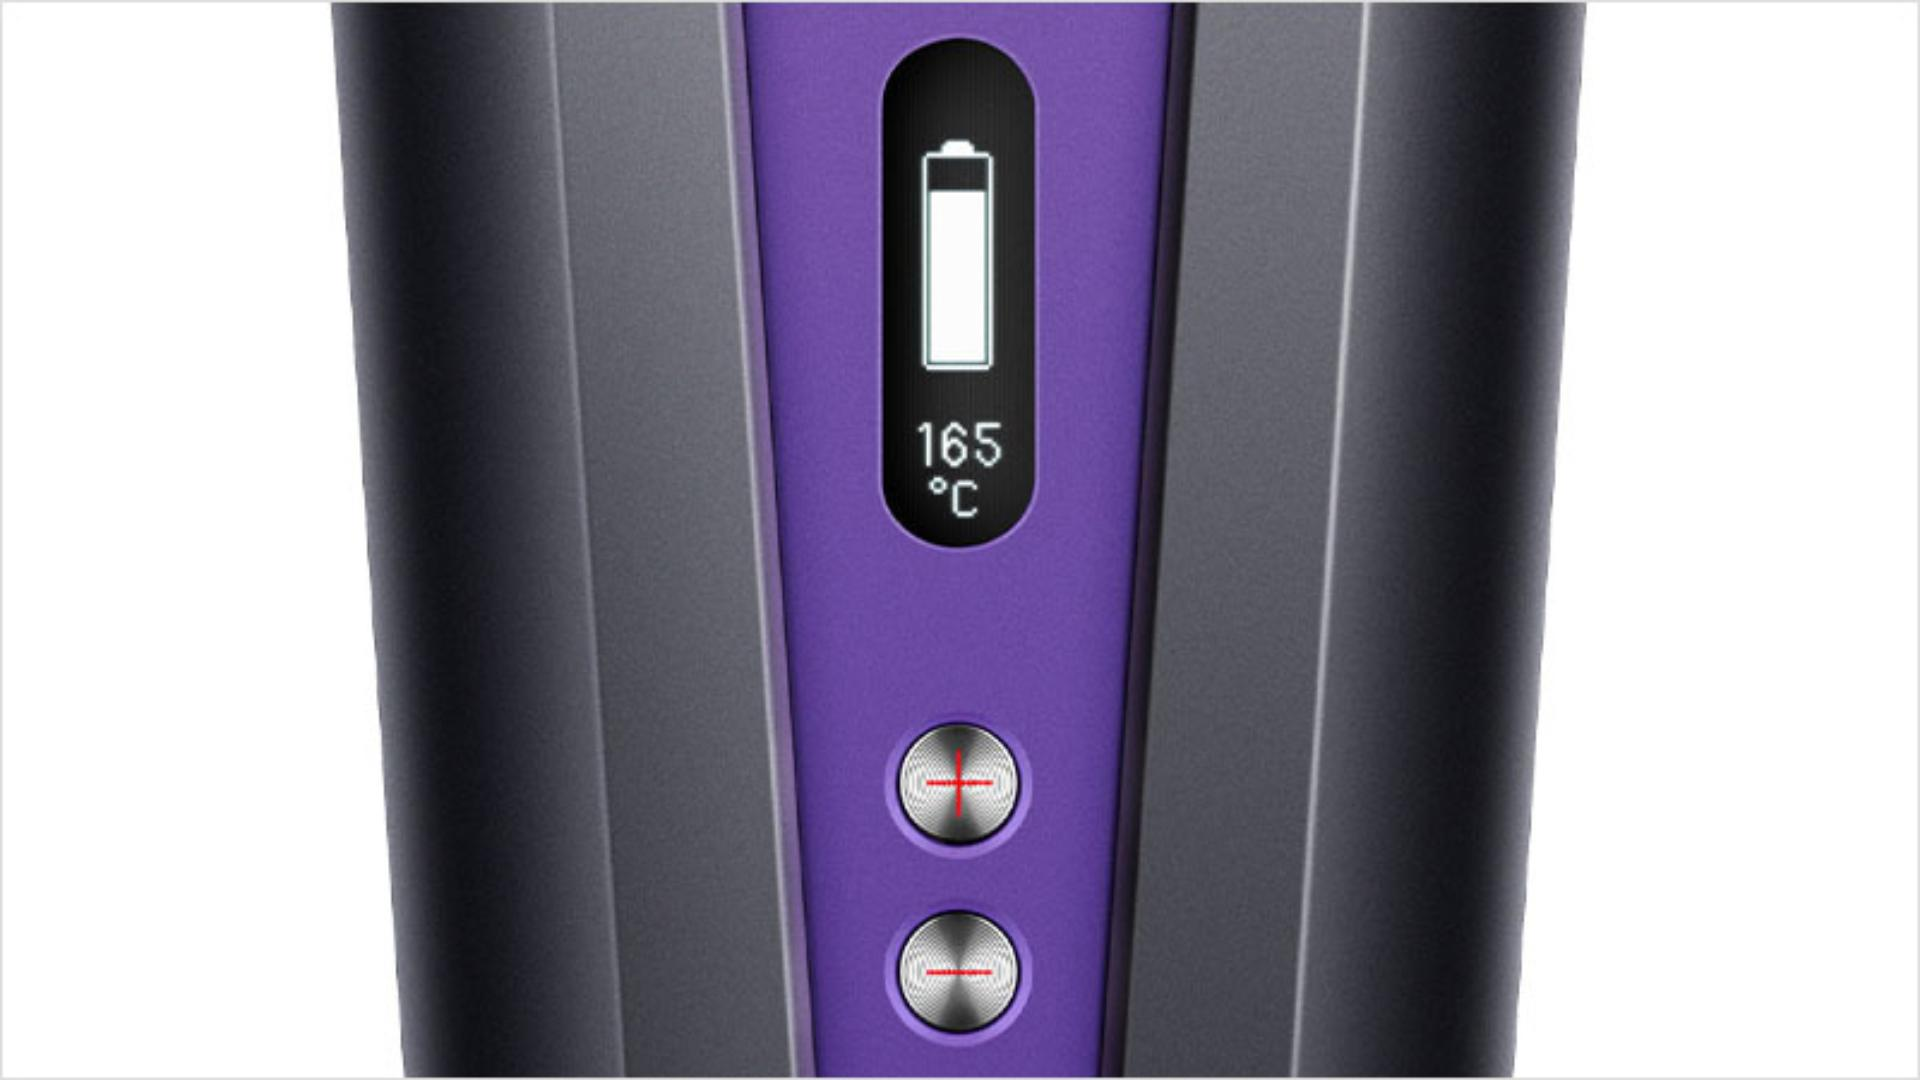 Close up of the OLED screen on the Dyson Corrale hair straightener